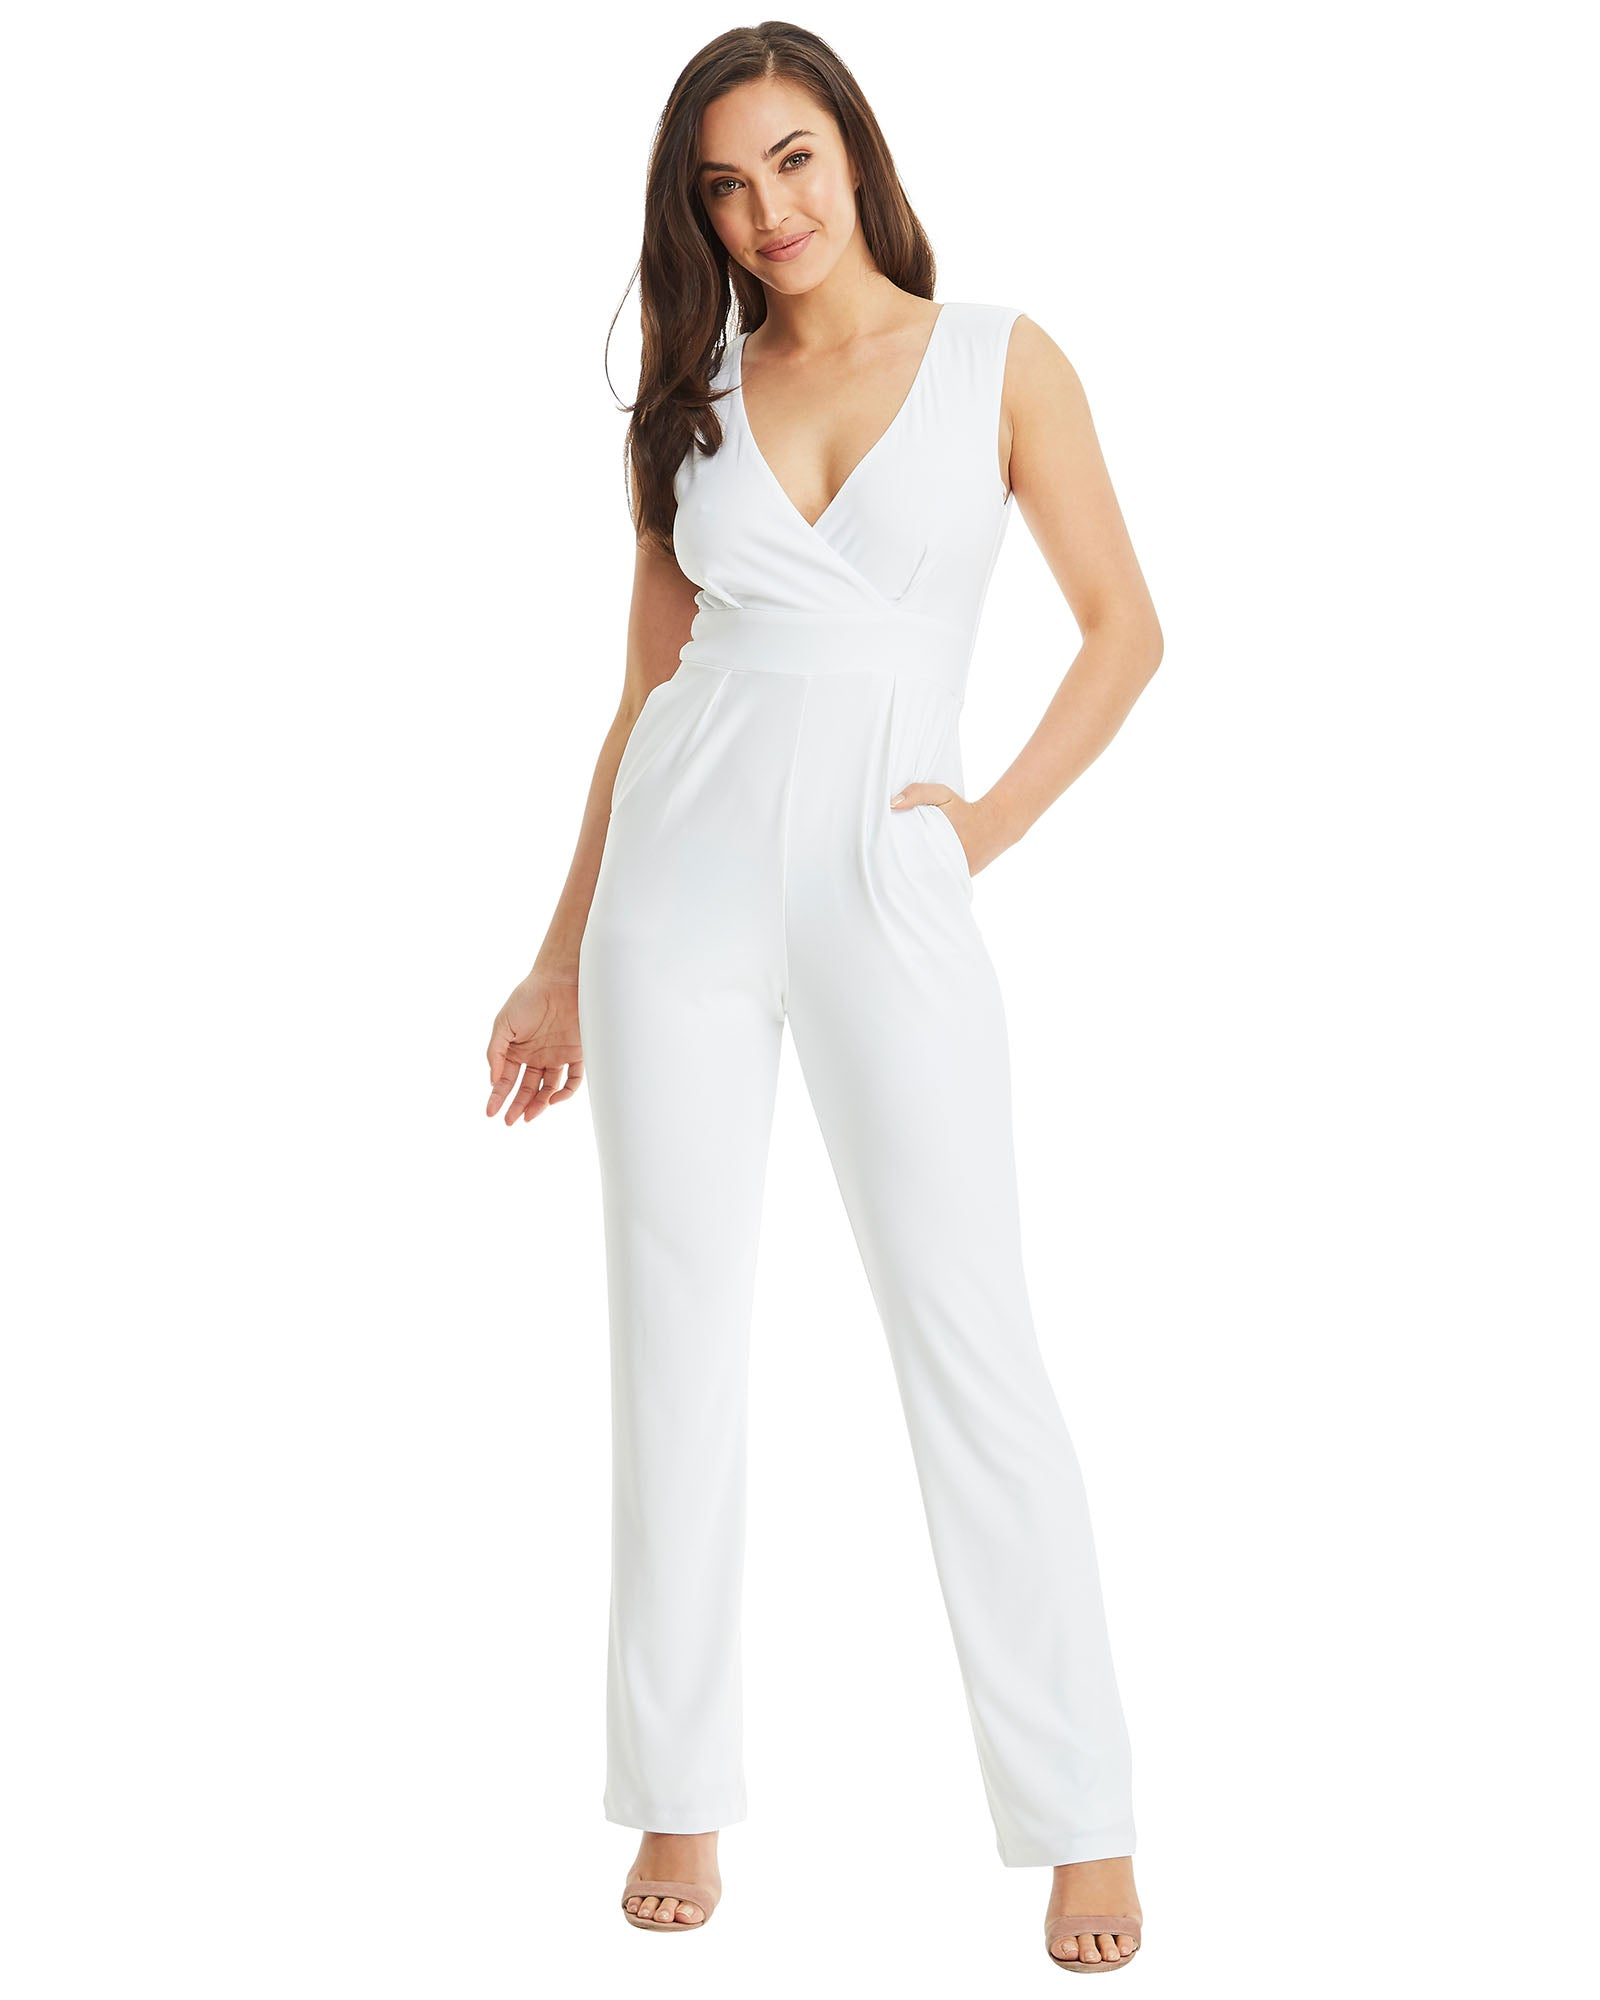 b9527bcd8c73 V Neck Jumpsuit - White – SKIVA Clothing